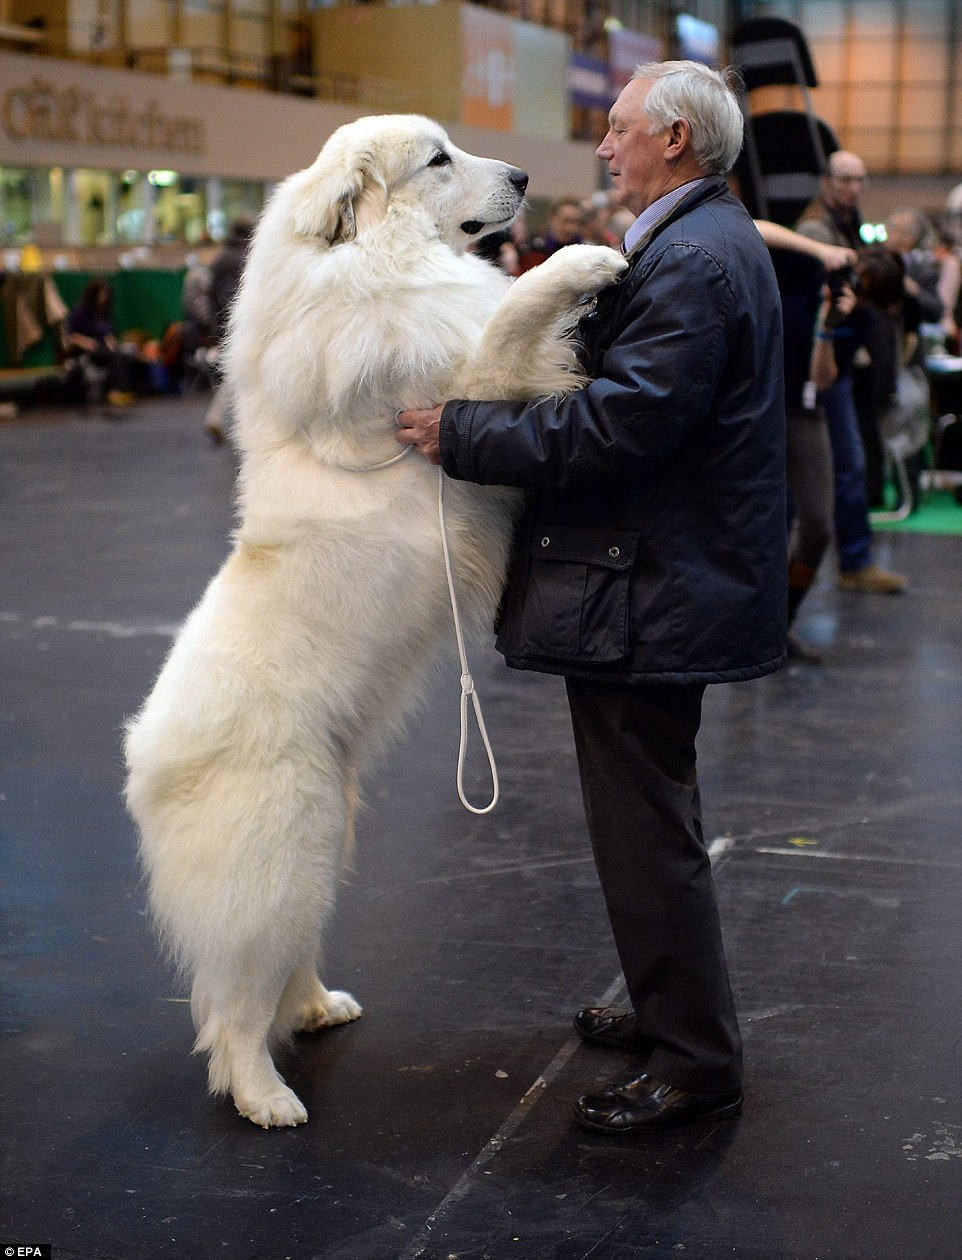 man with his Pyrenean Mountain Dog on day 1. Photo: EPA images